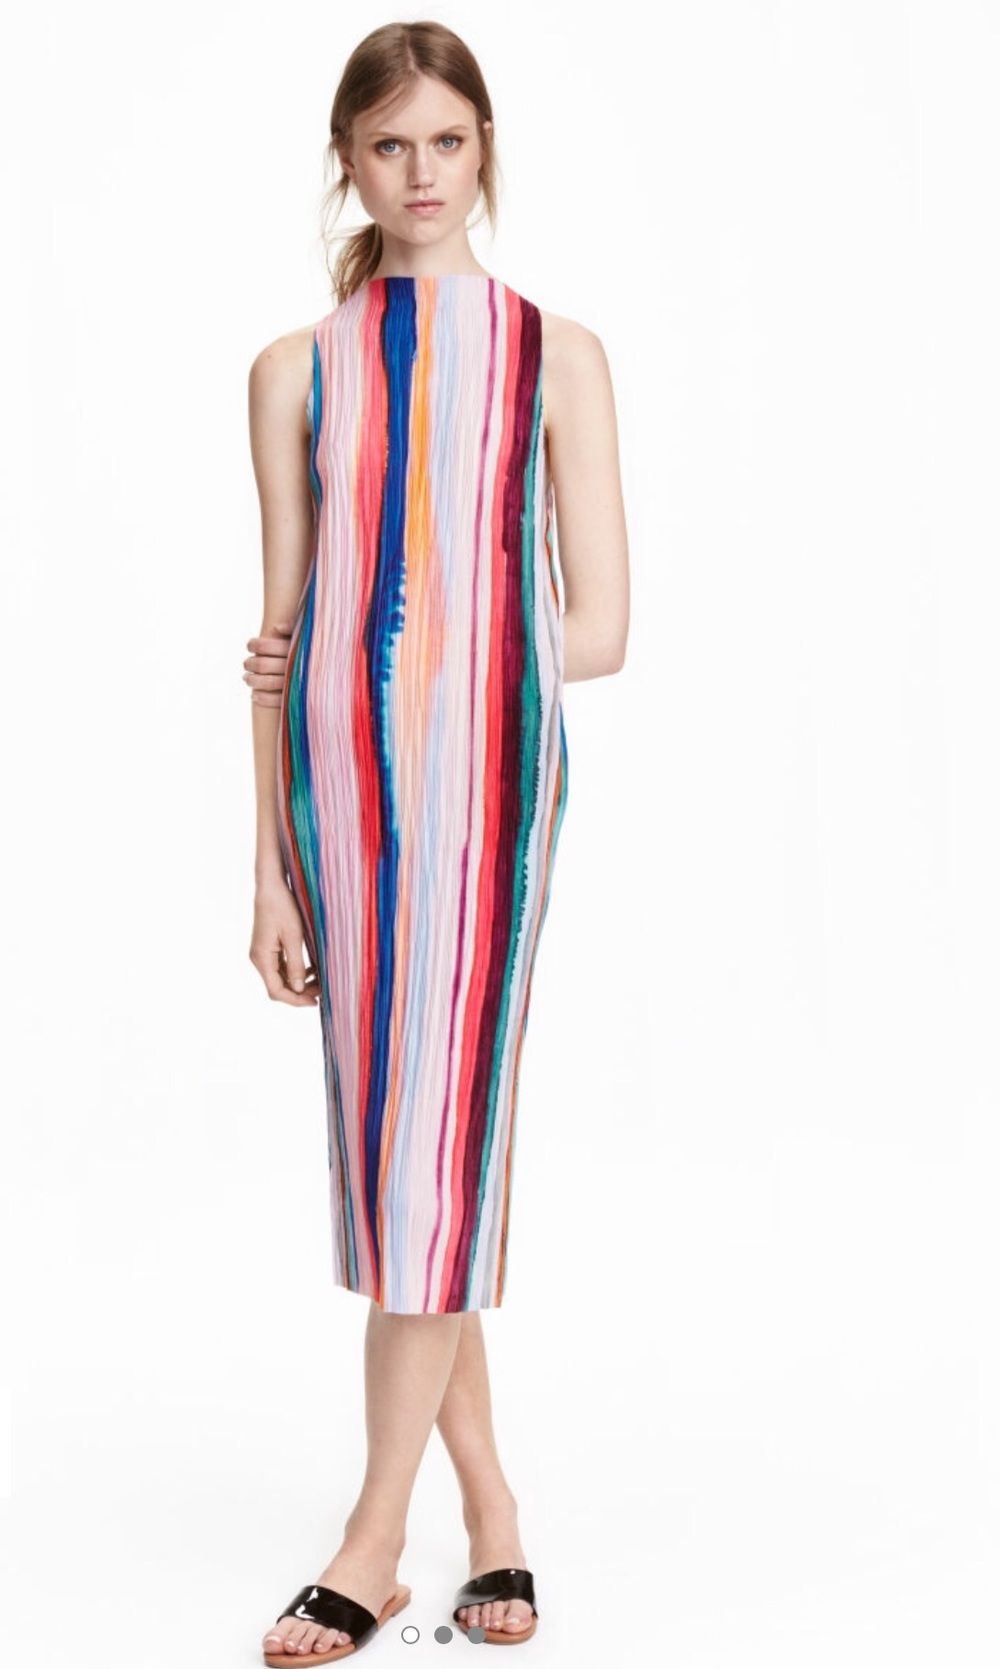 Multi colored Dress from HM 299 Dkk